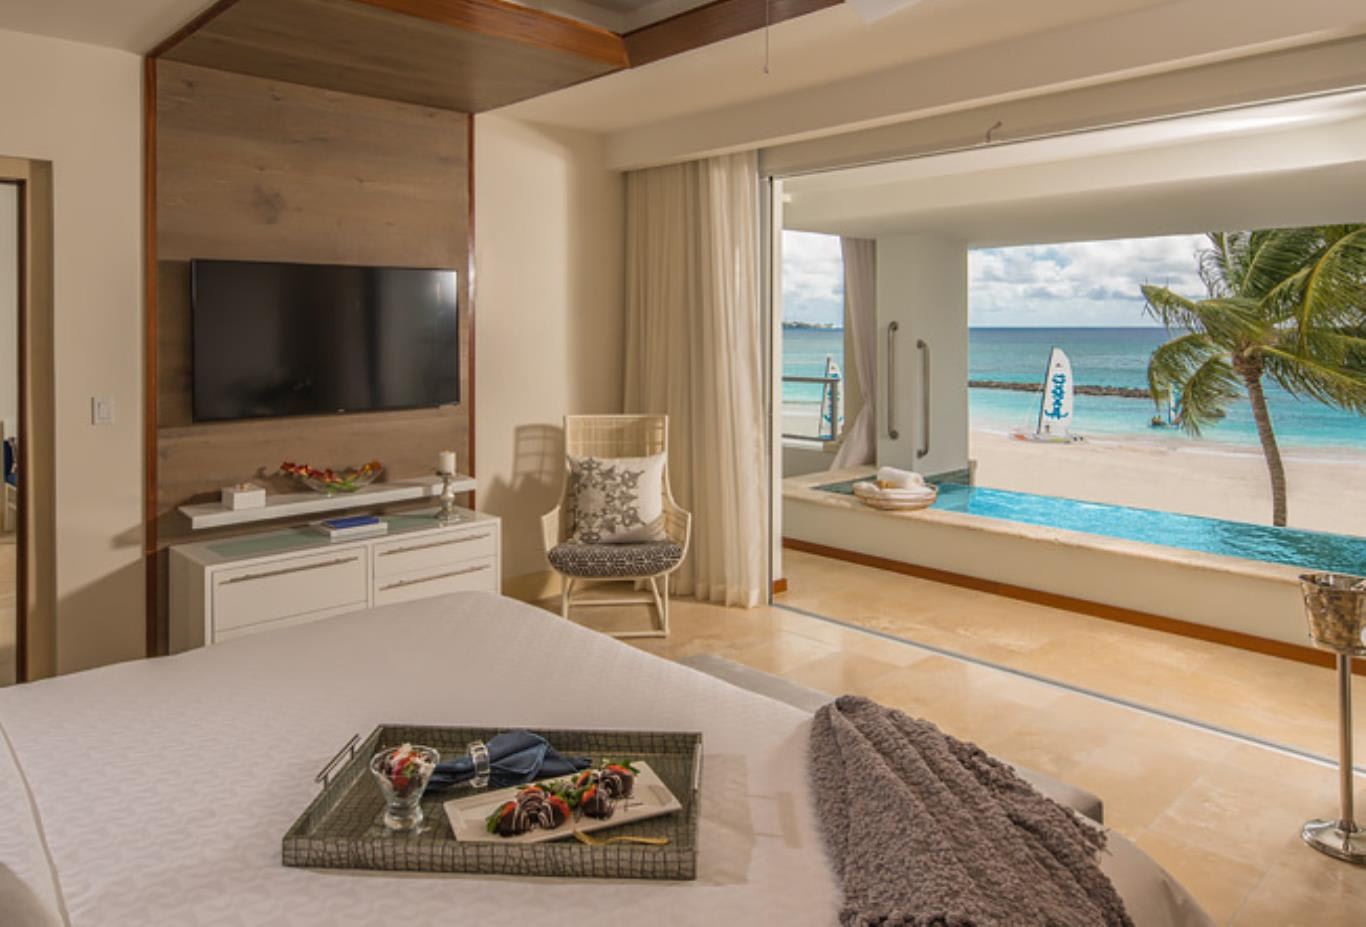 BSKY Beachfront One Bedroom Skypool Butler Suite with Balcony Tranquillity Soaking Tub bedrooom and lounge